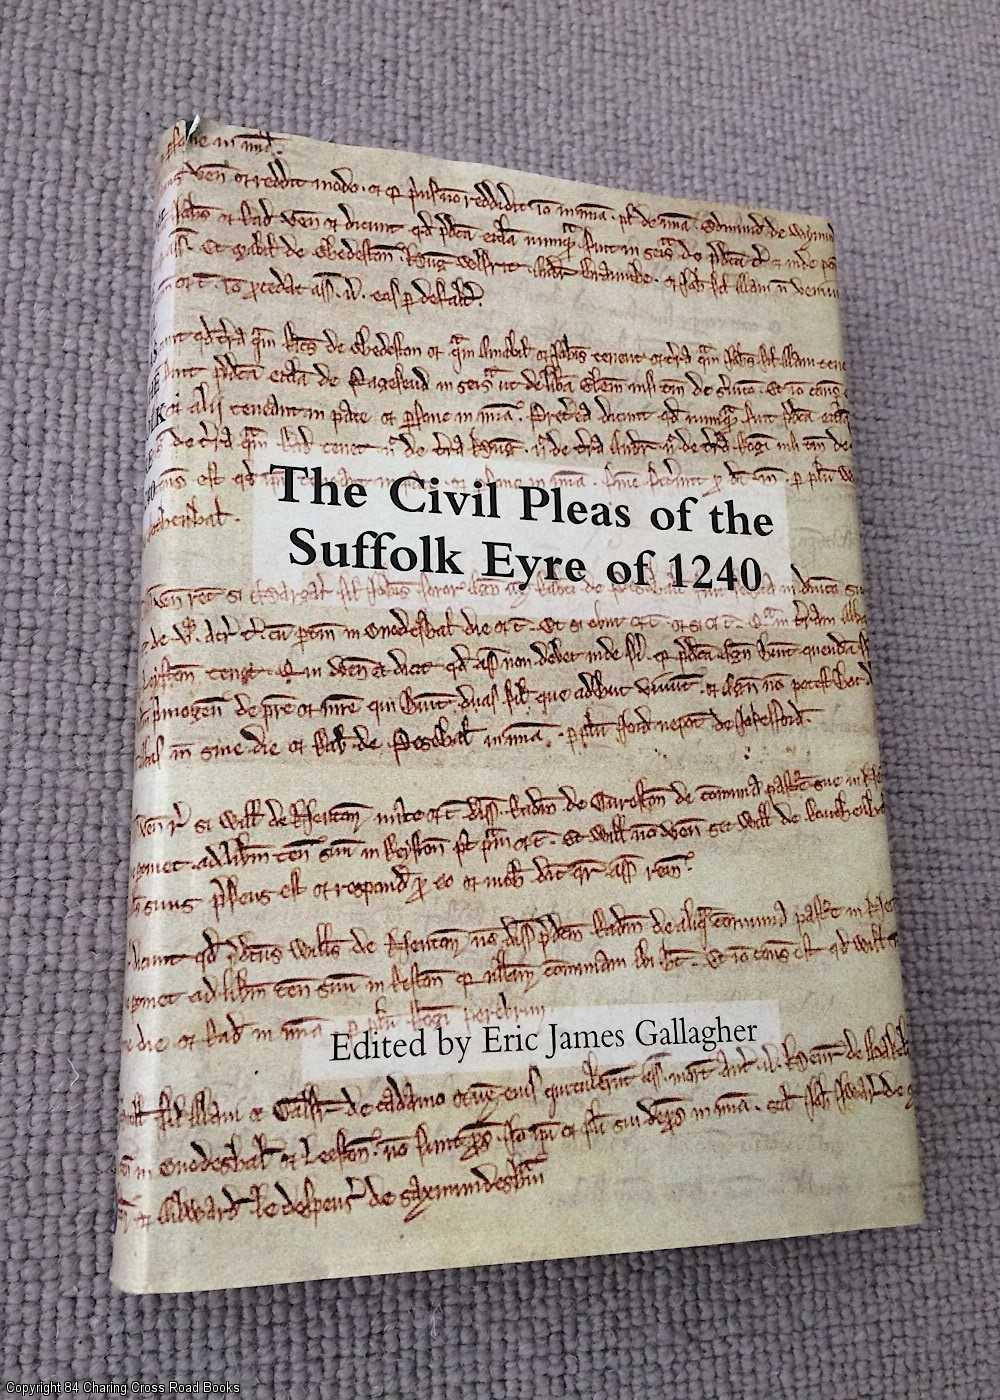 GALLAGHER, ERIC JAMES (ED.) - The Civil Pleas of the Suffolk Eyre of 1240